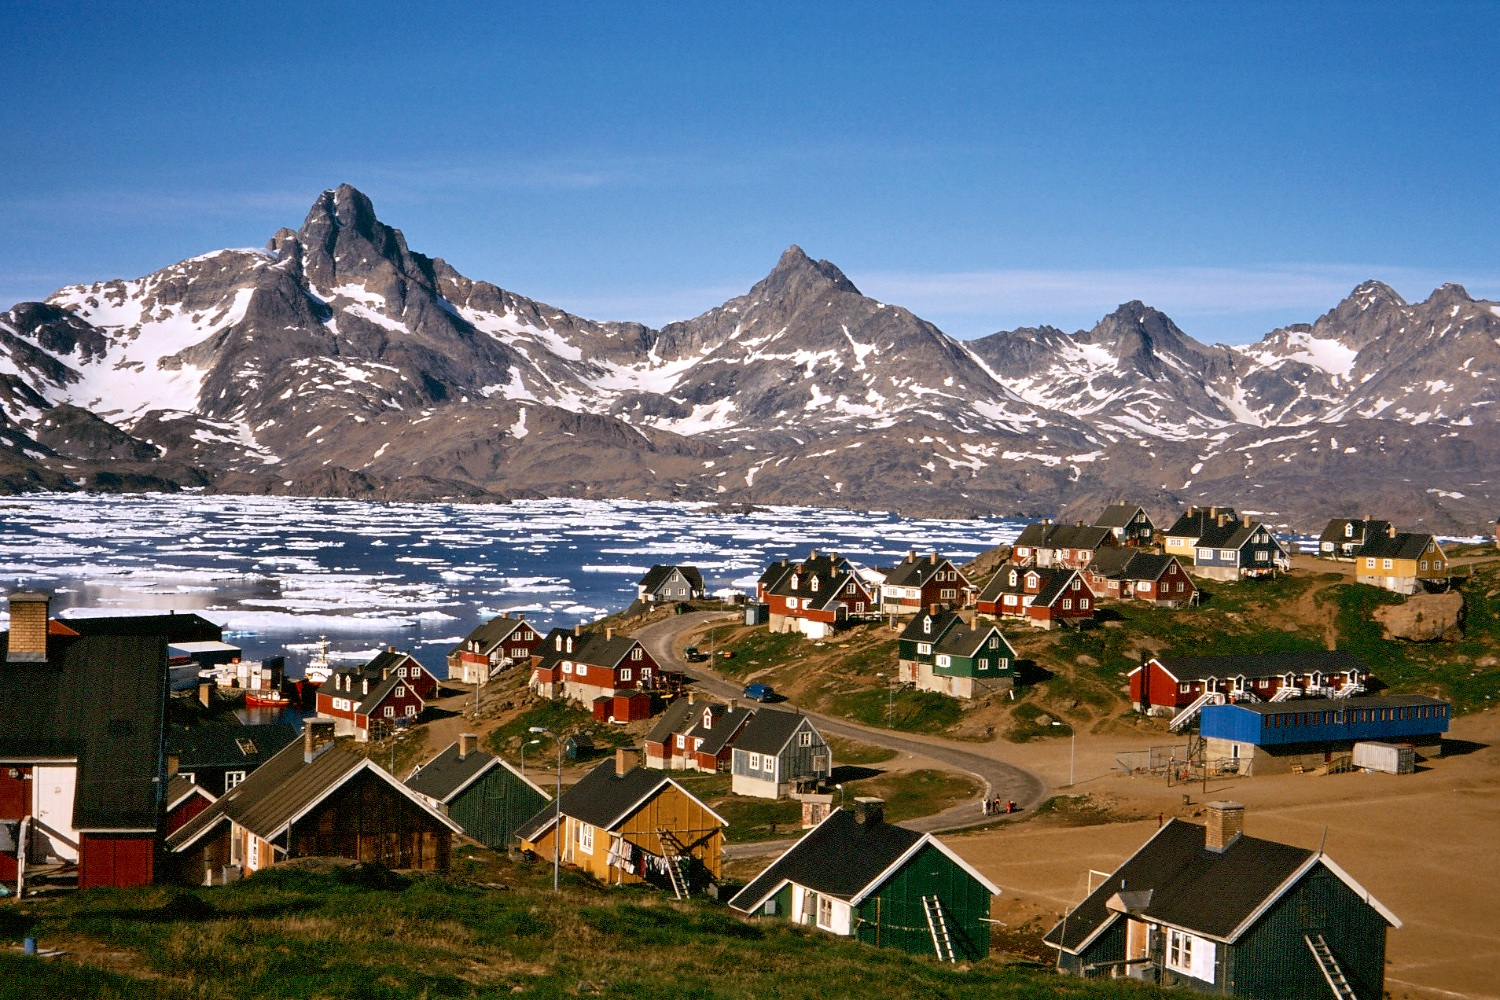 The town of Tasiilaq with it's colourful houses